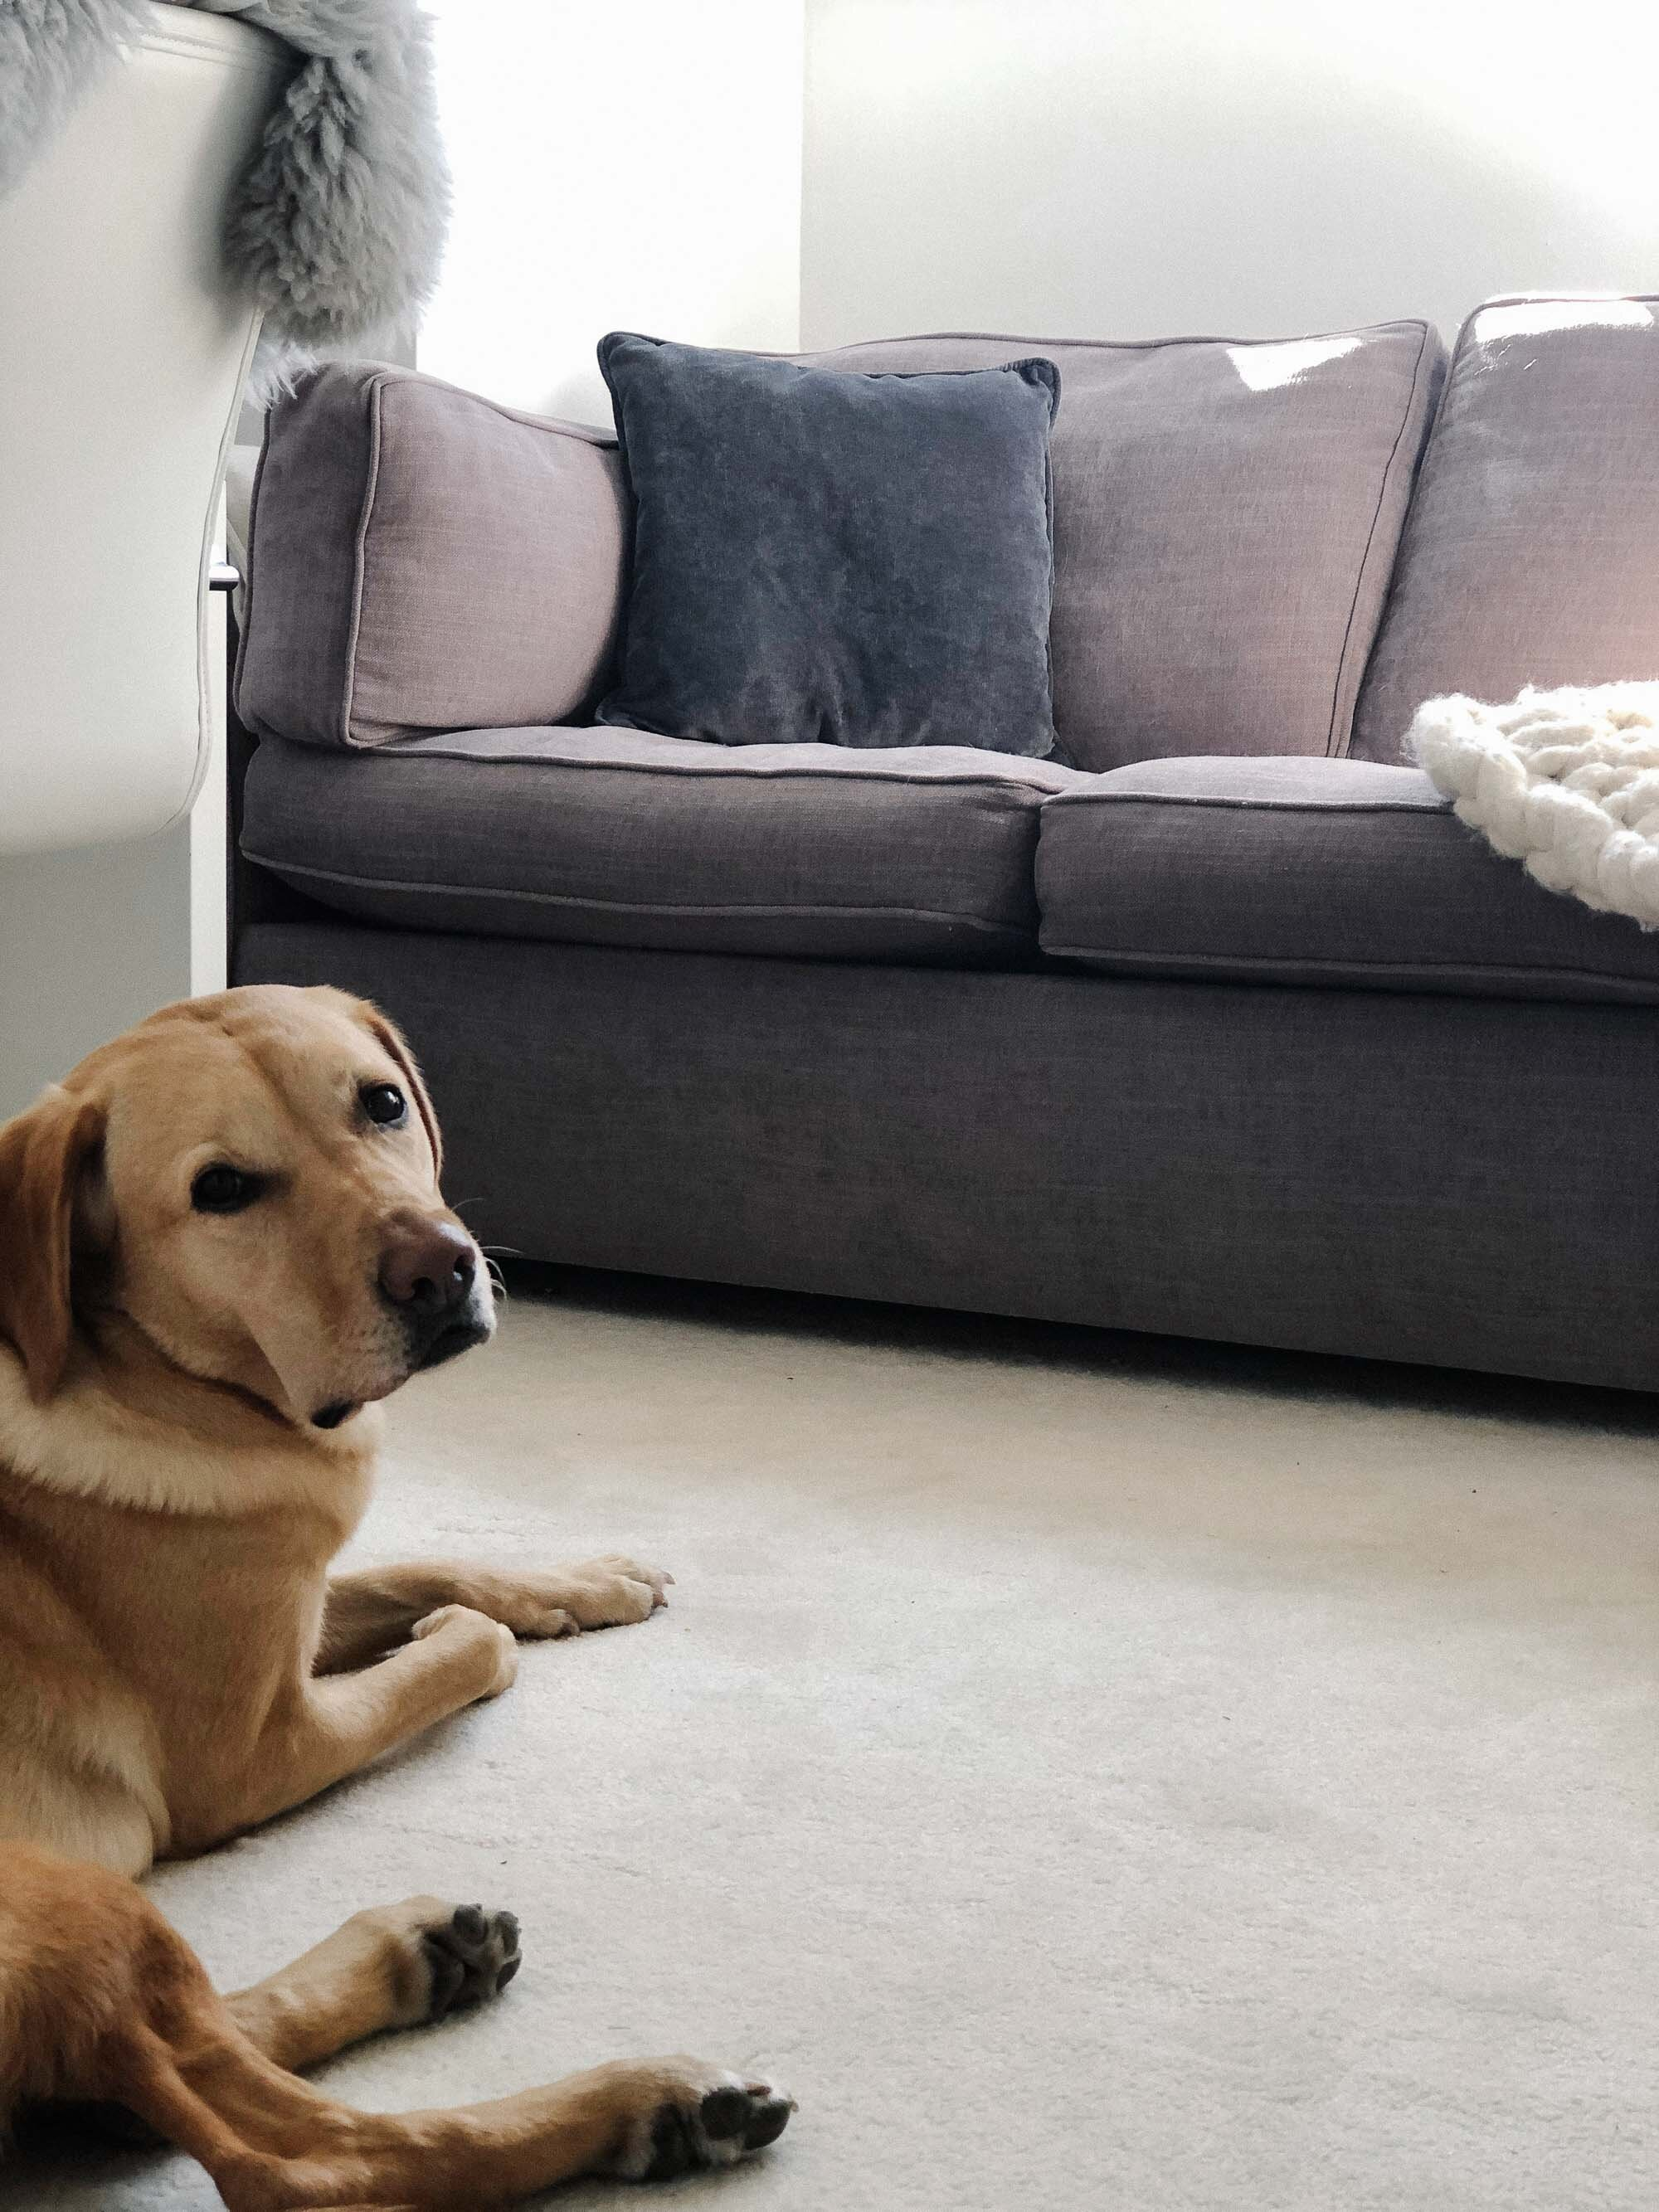 7 Labrador lying in front of the sofa.jpg